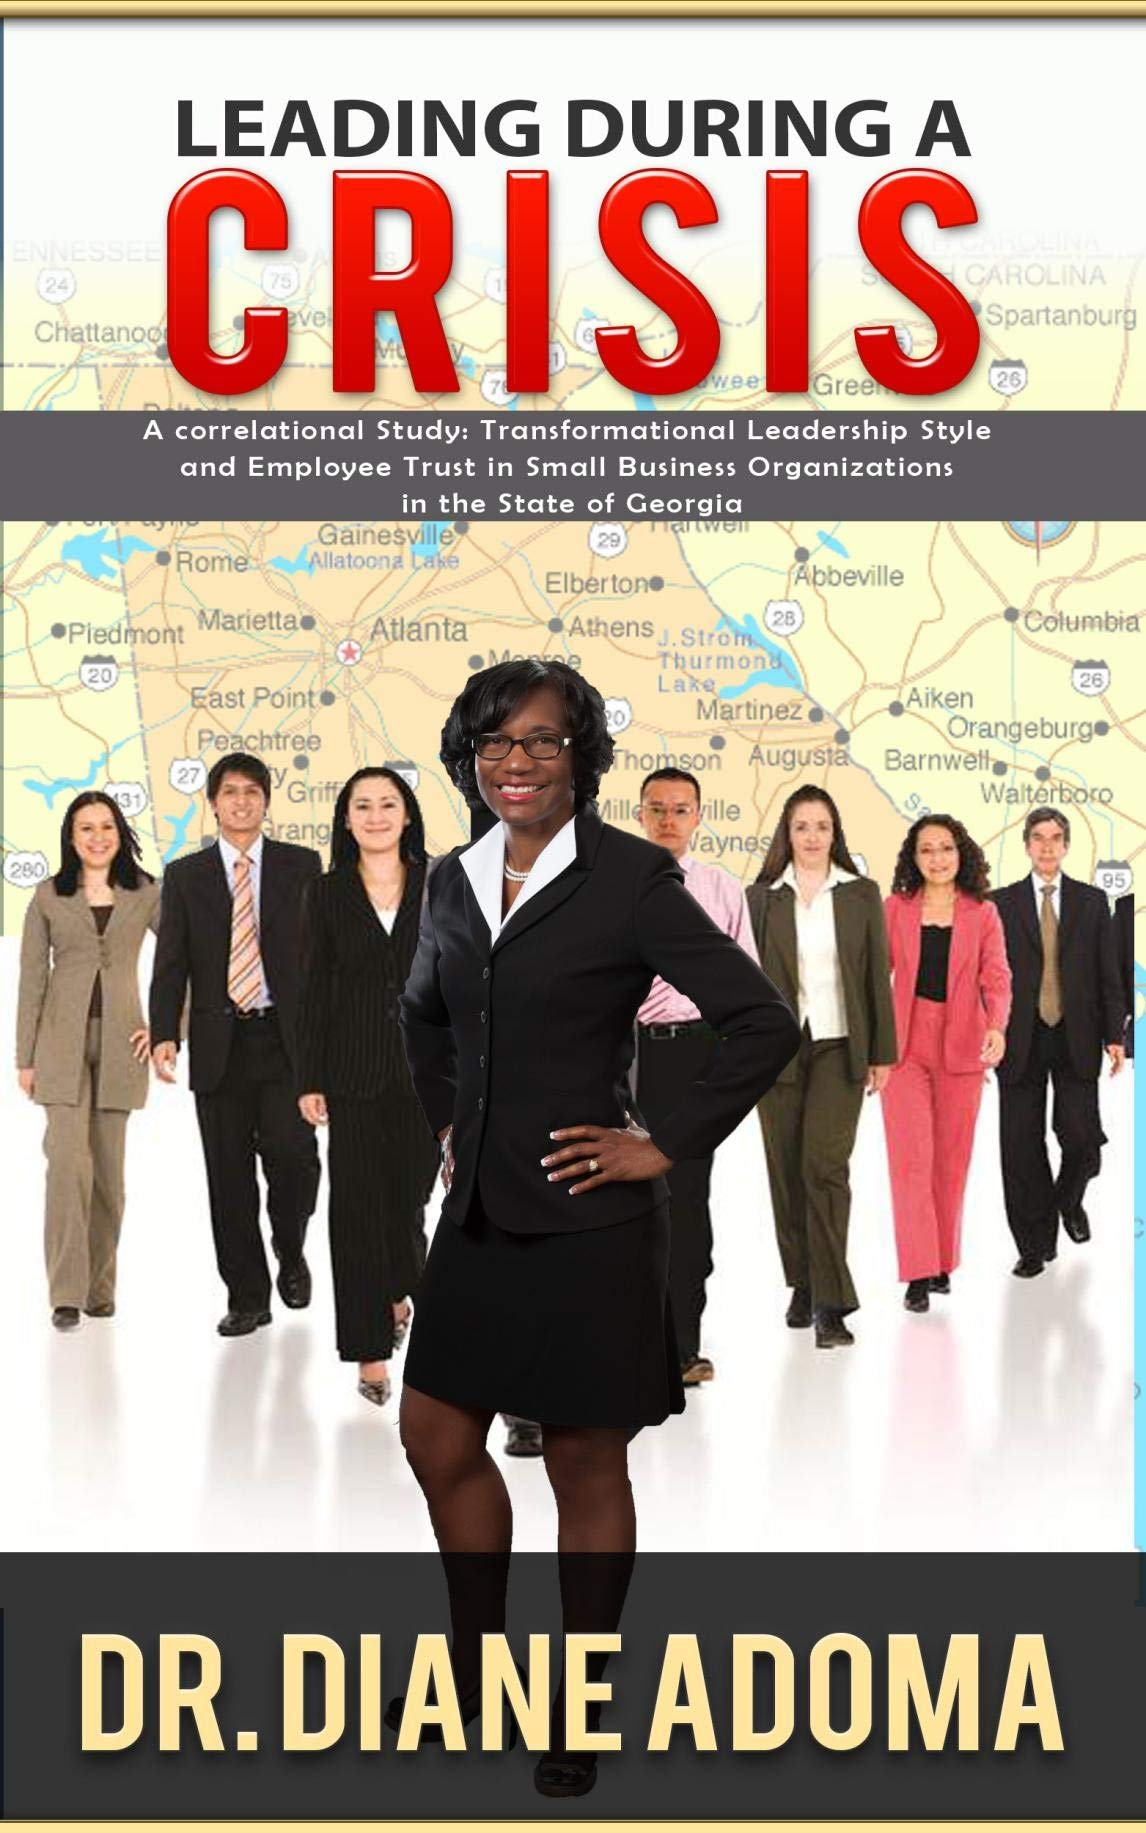 LEADING DURING A CRISIS: A CORRELATIONAL STUDY: TRANSFORMATIONAL LEADERSHIP STYLE AND EMPLOYEE TRUST IN SMALL BUSINESS ORGANIZATIONS IN THE STATE OF GEORGIA by